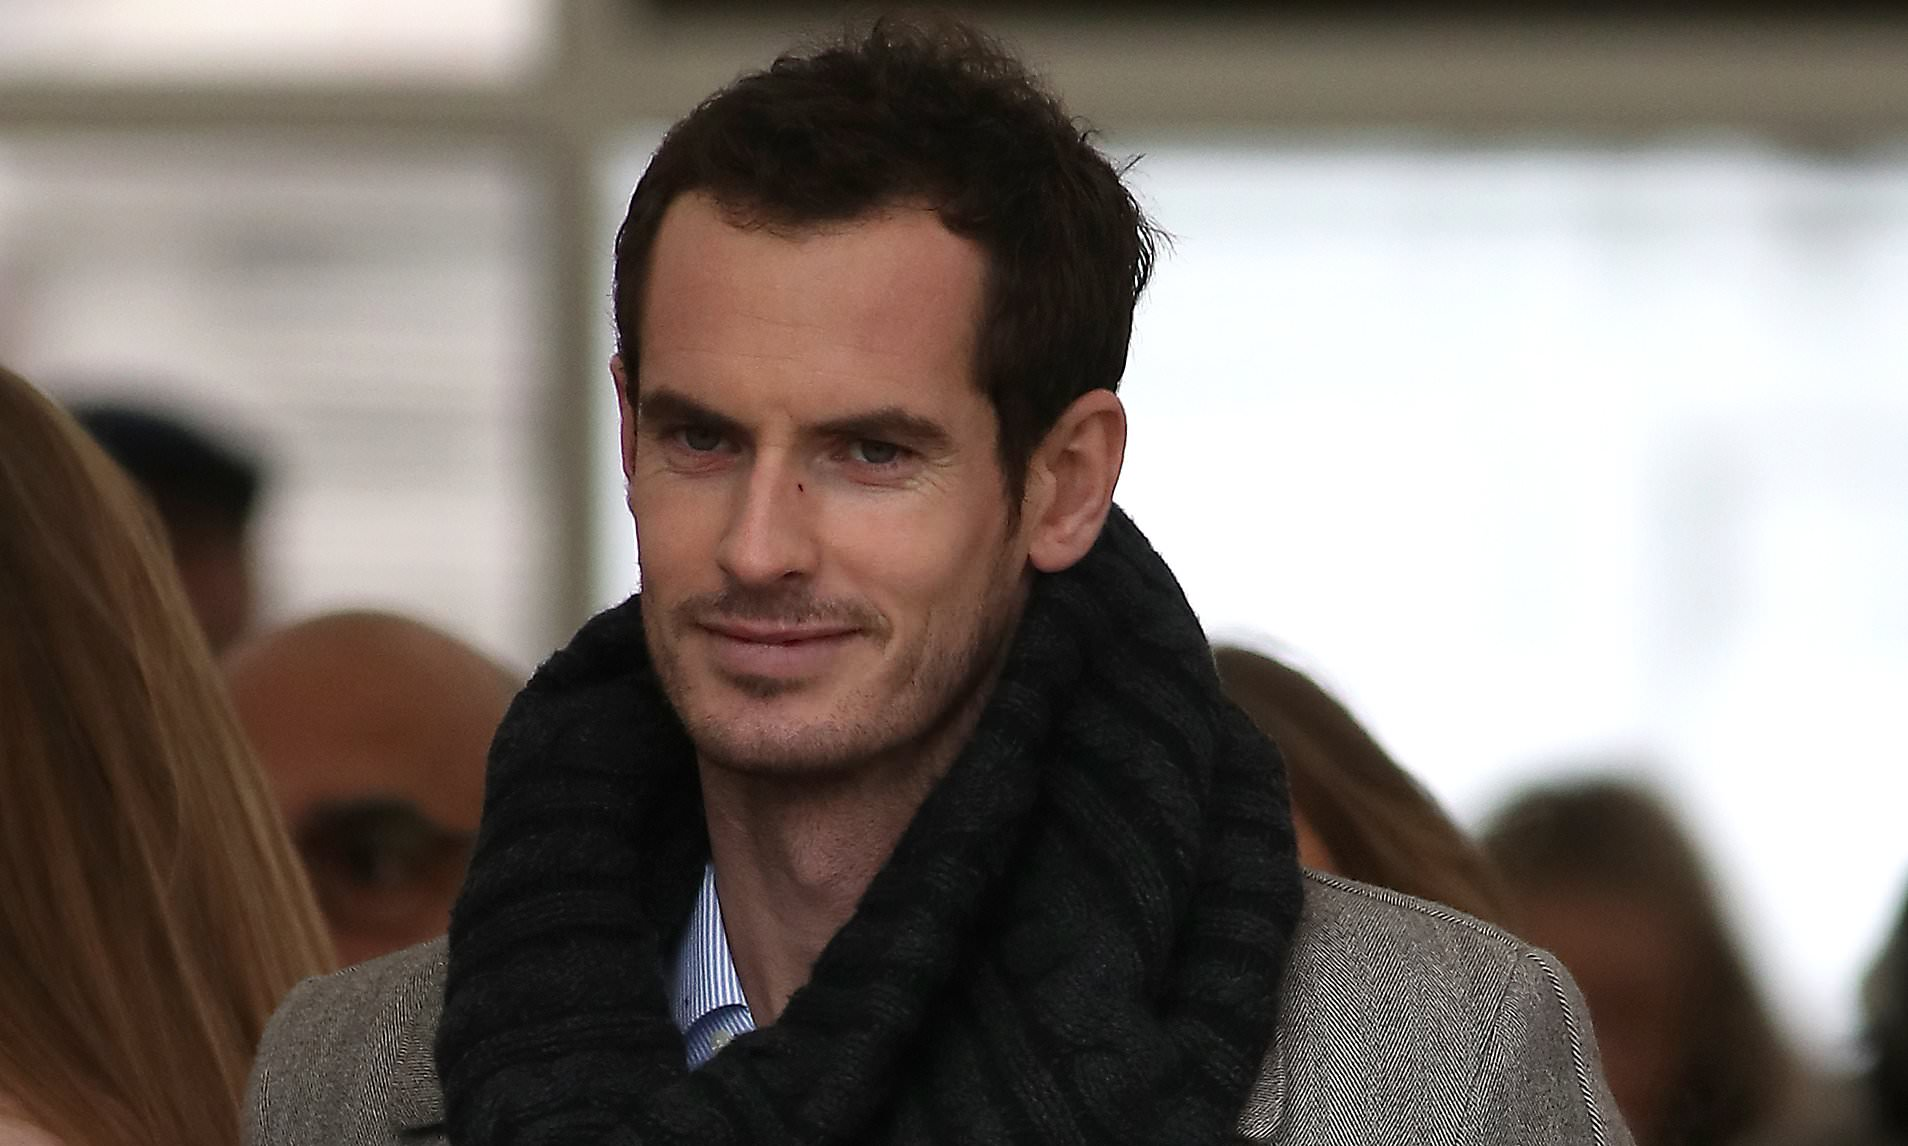 Andy Murray on track to recovery from hip injury - Net